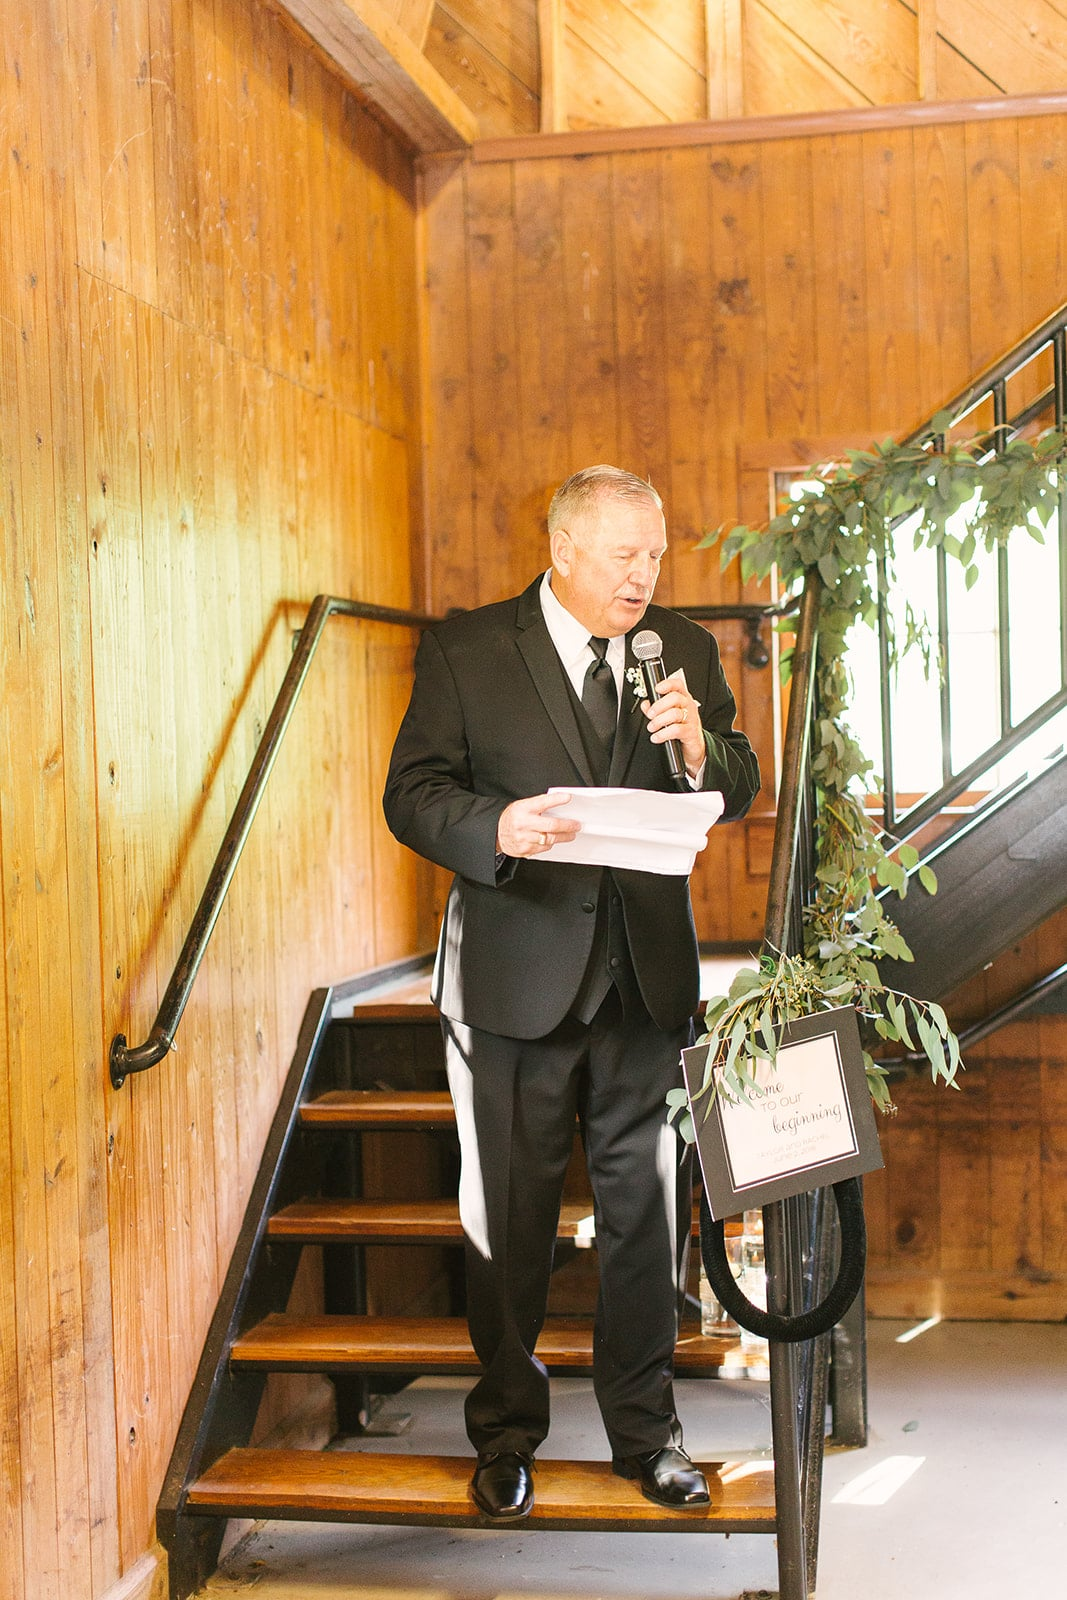 Father of the Bride gives a toast at a spring wedding reception at the Diary Barn coordinated by Magnificent Moments Weddings